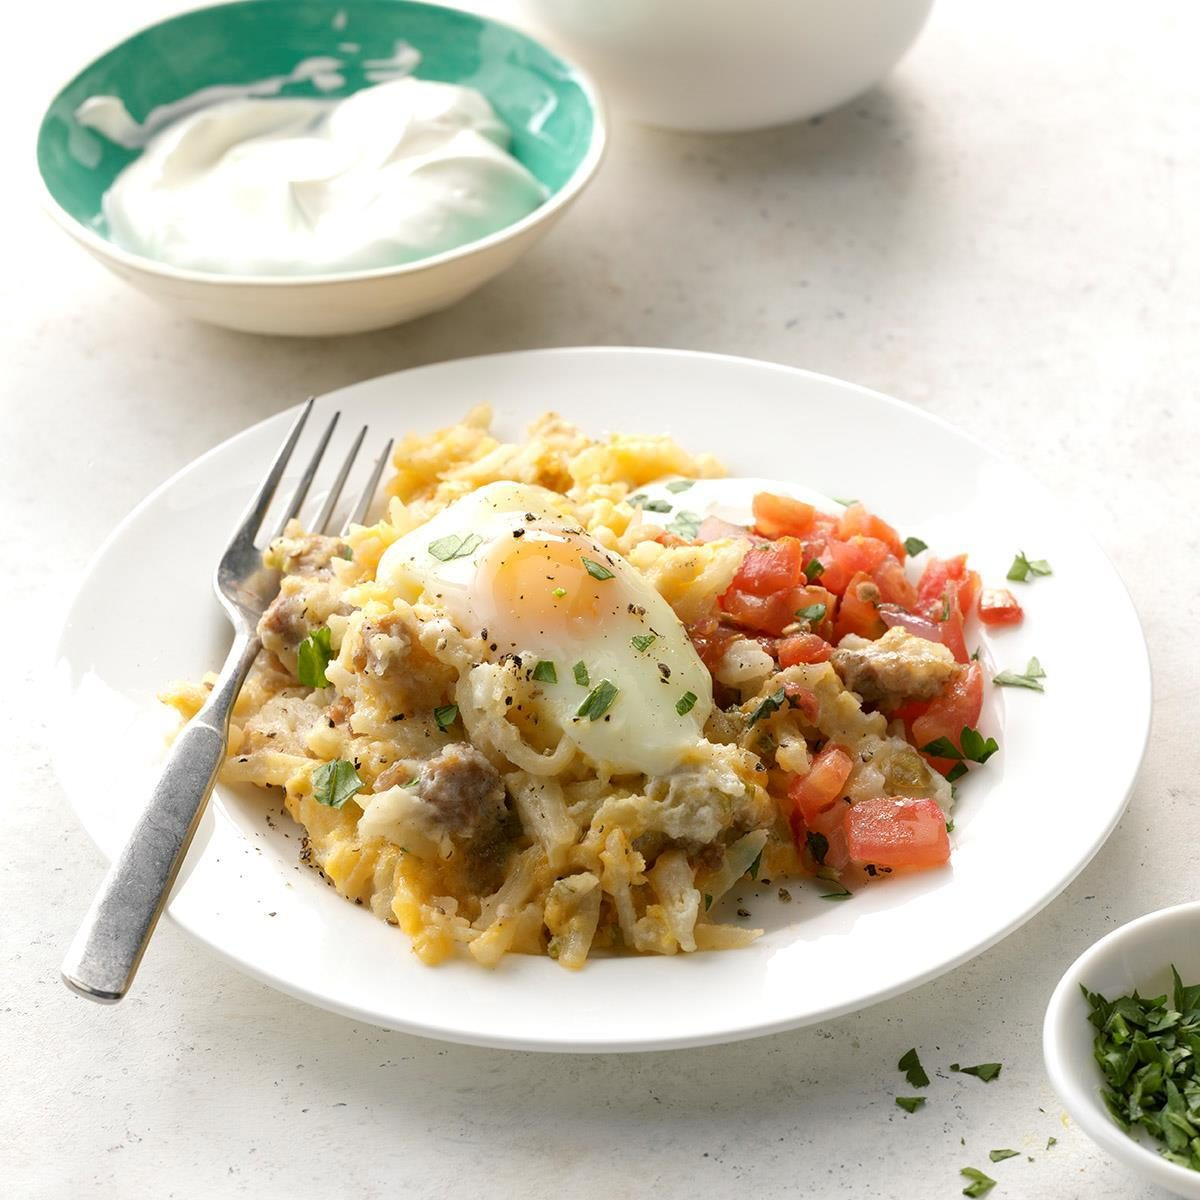 Slow Cooker Breakfast Recipes: All-In-One Slow-Cooker Breakfast Recipe